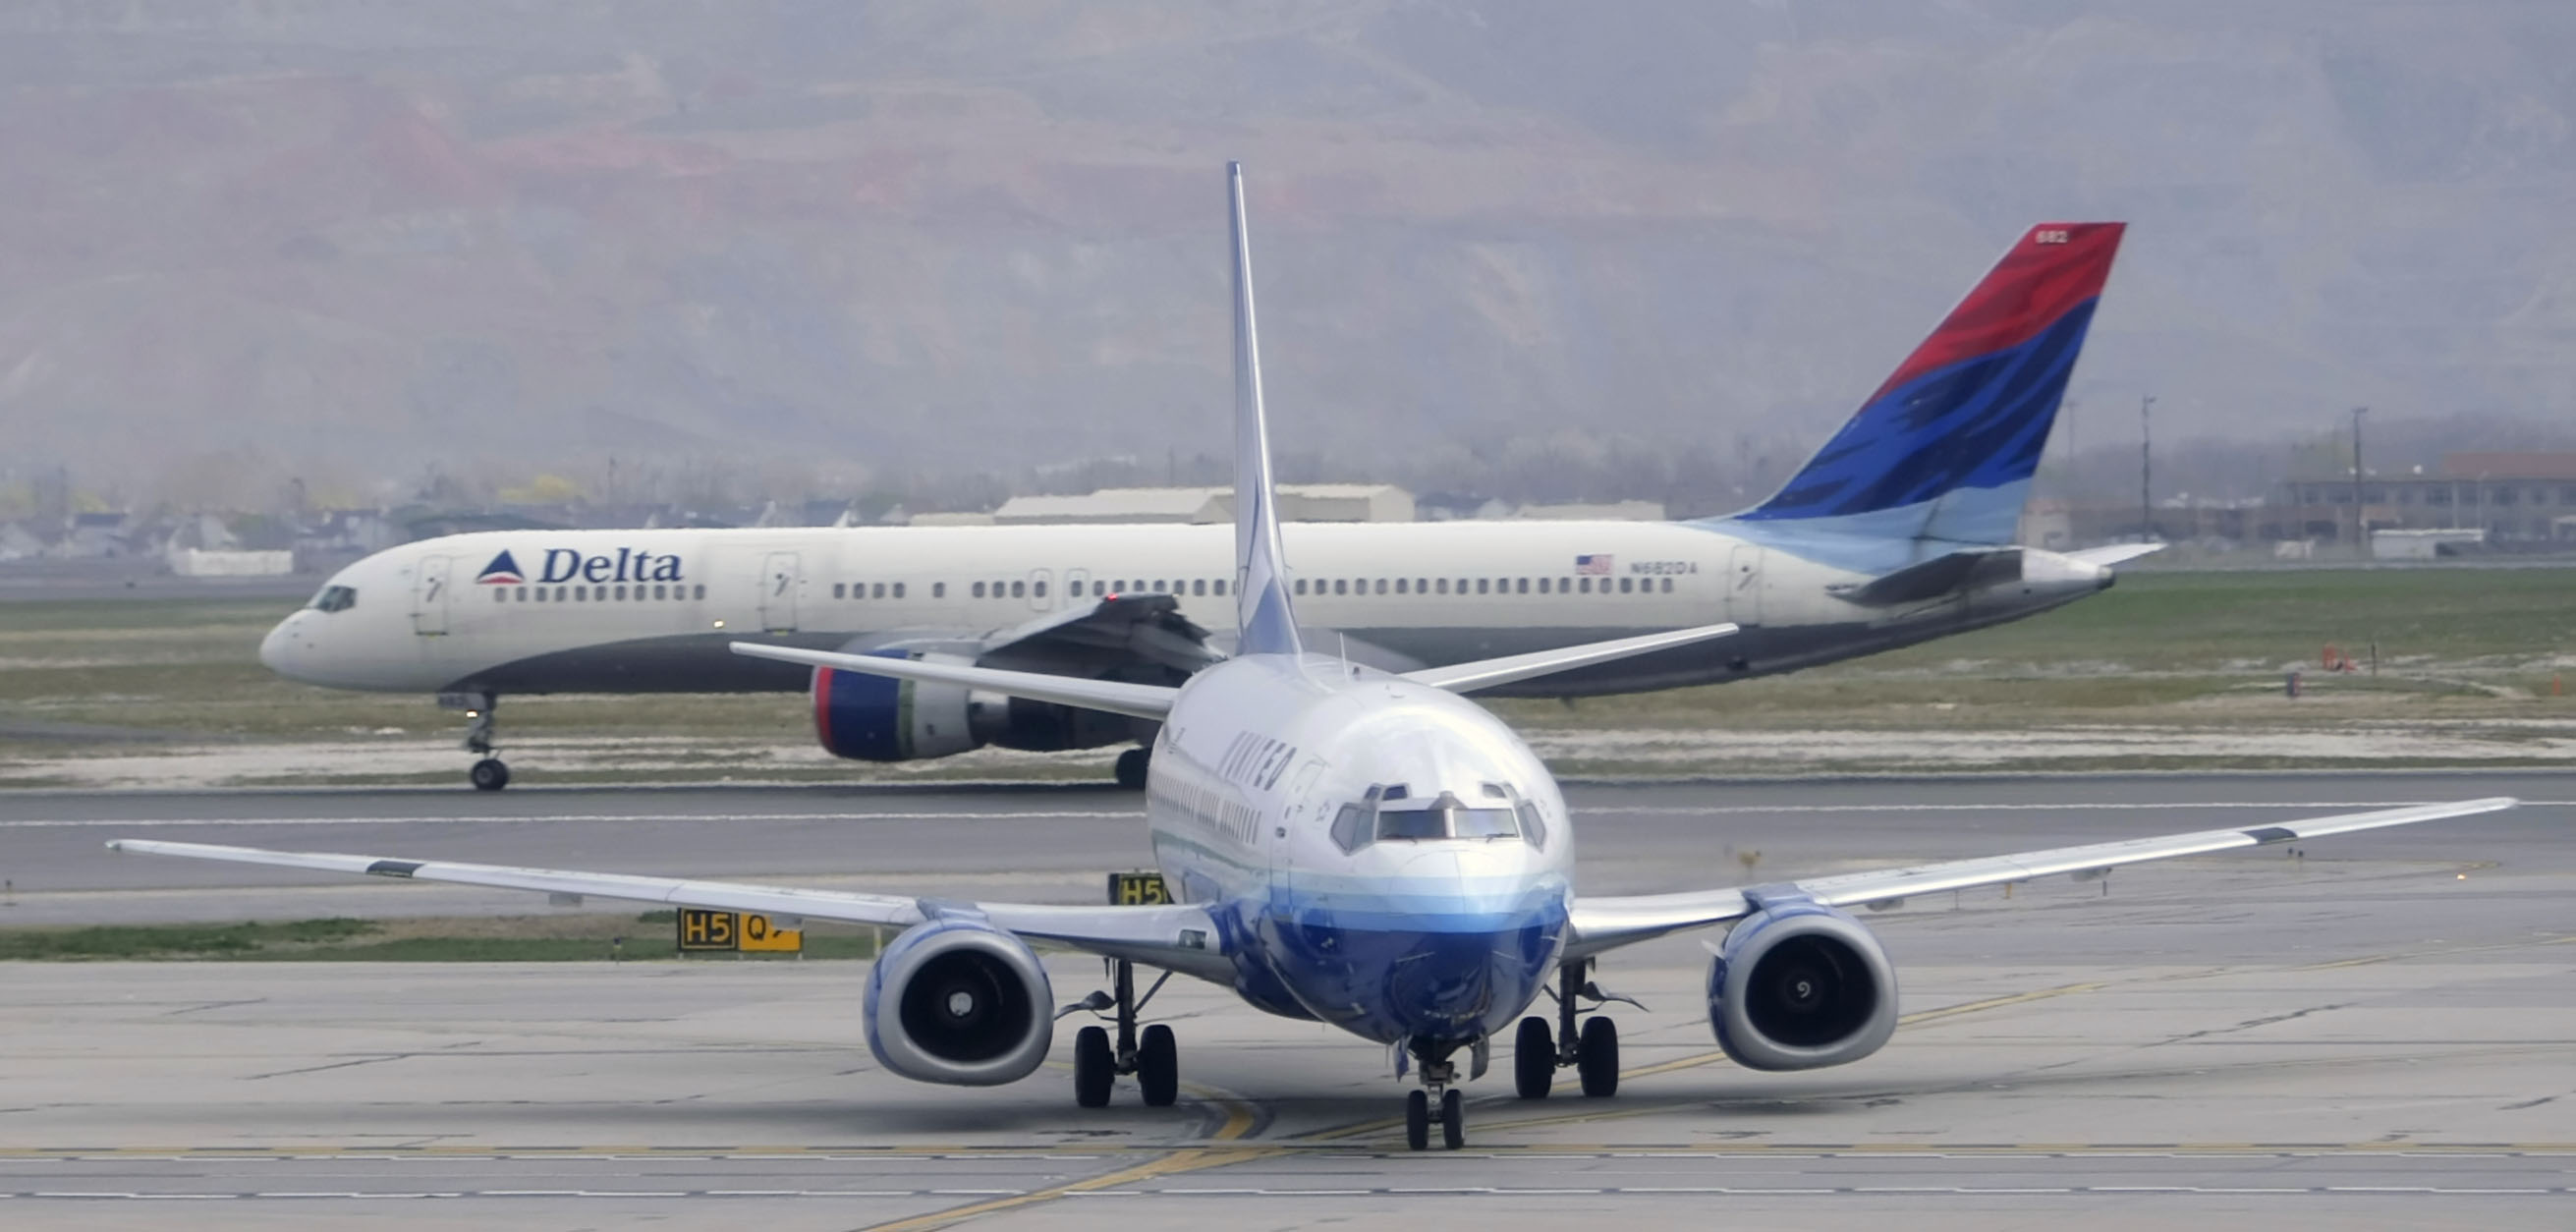 United and Delta Airlines planes on a runway.